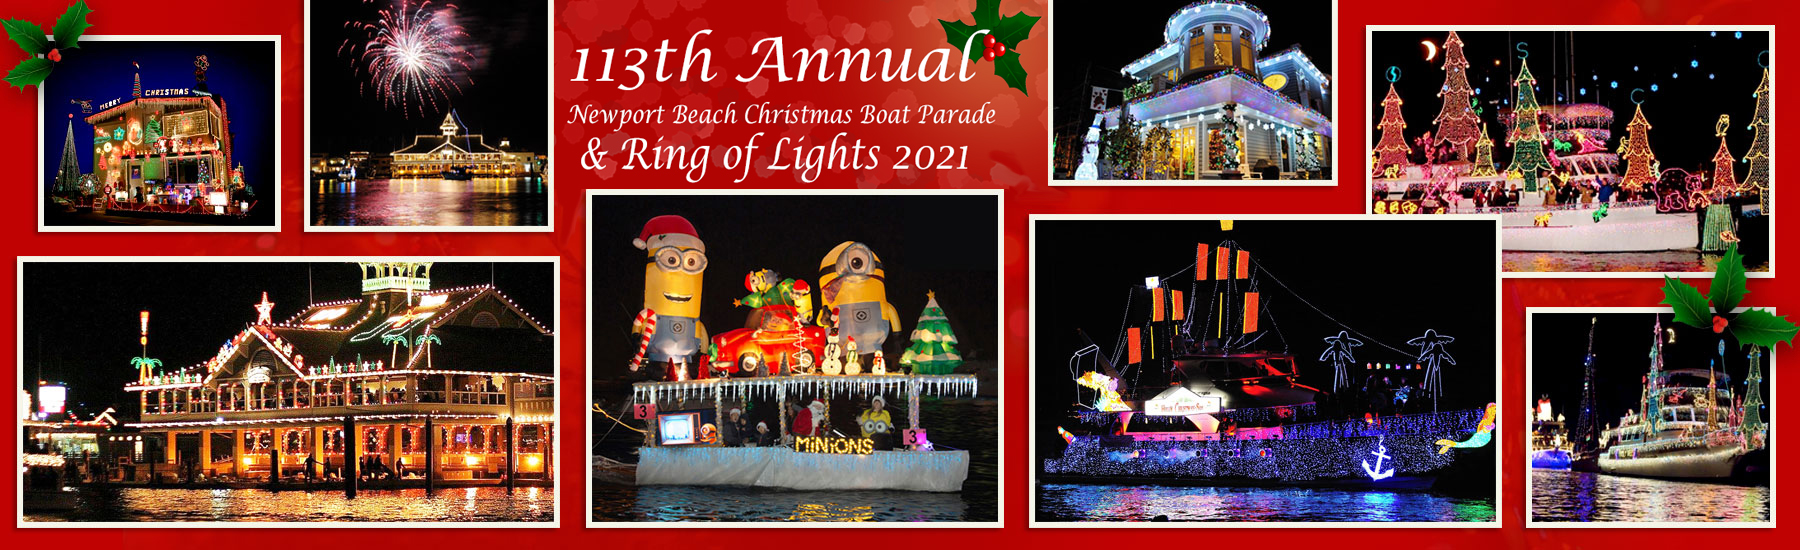 2020 Newport Beach Boat Parade Website   Company Christmas Event